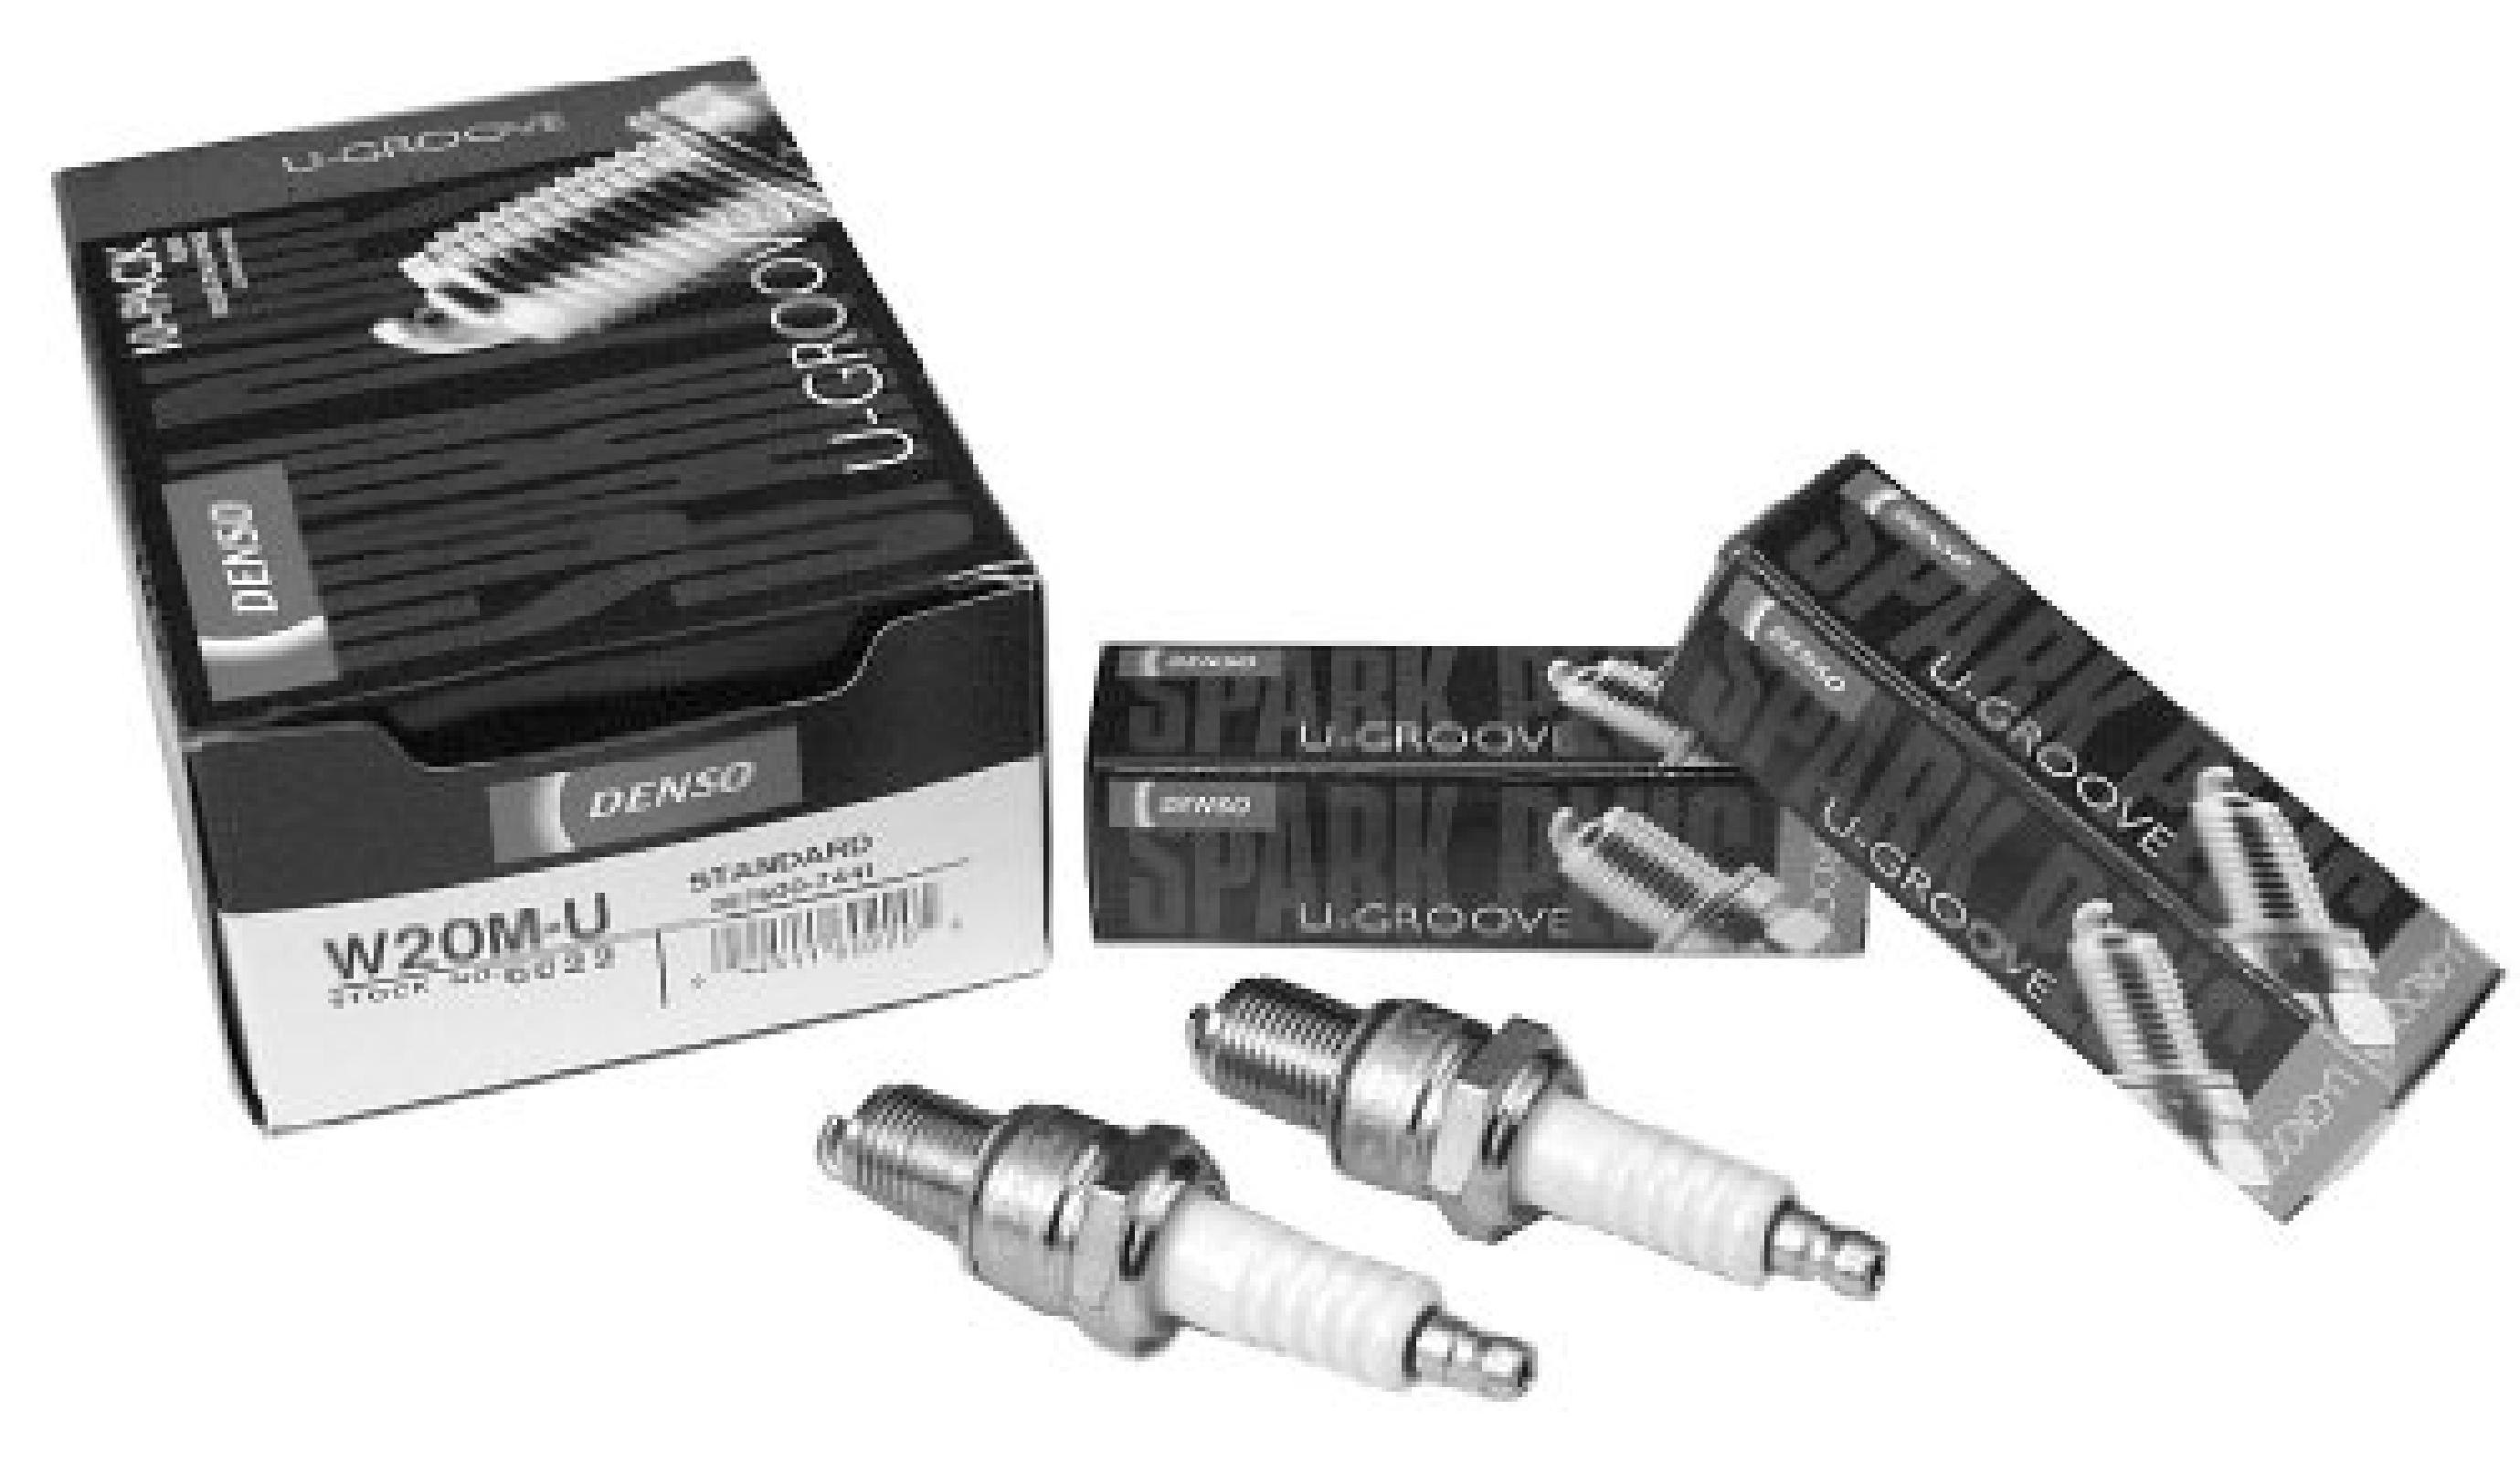 DENSO SPARK PLUG W14EPR U part# 12555 by Rotary